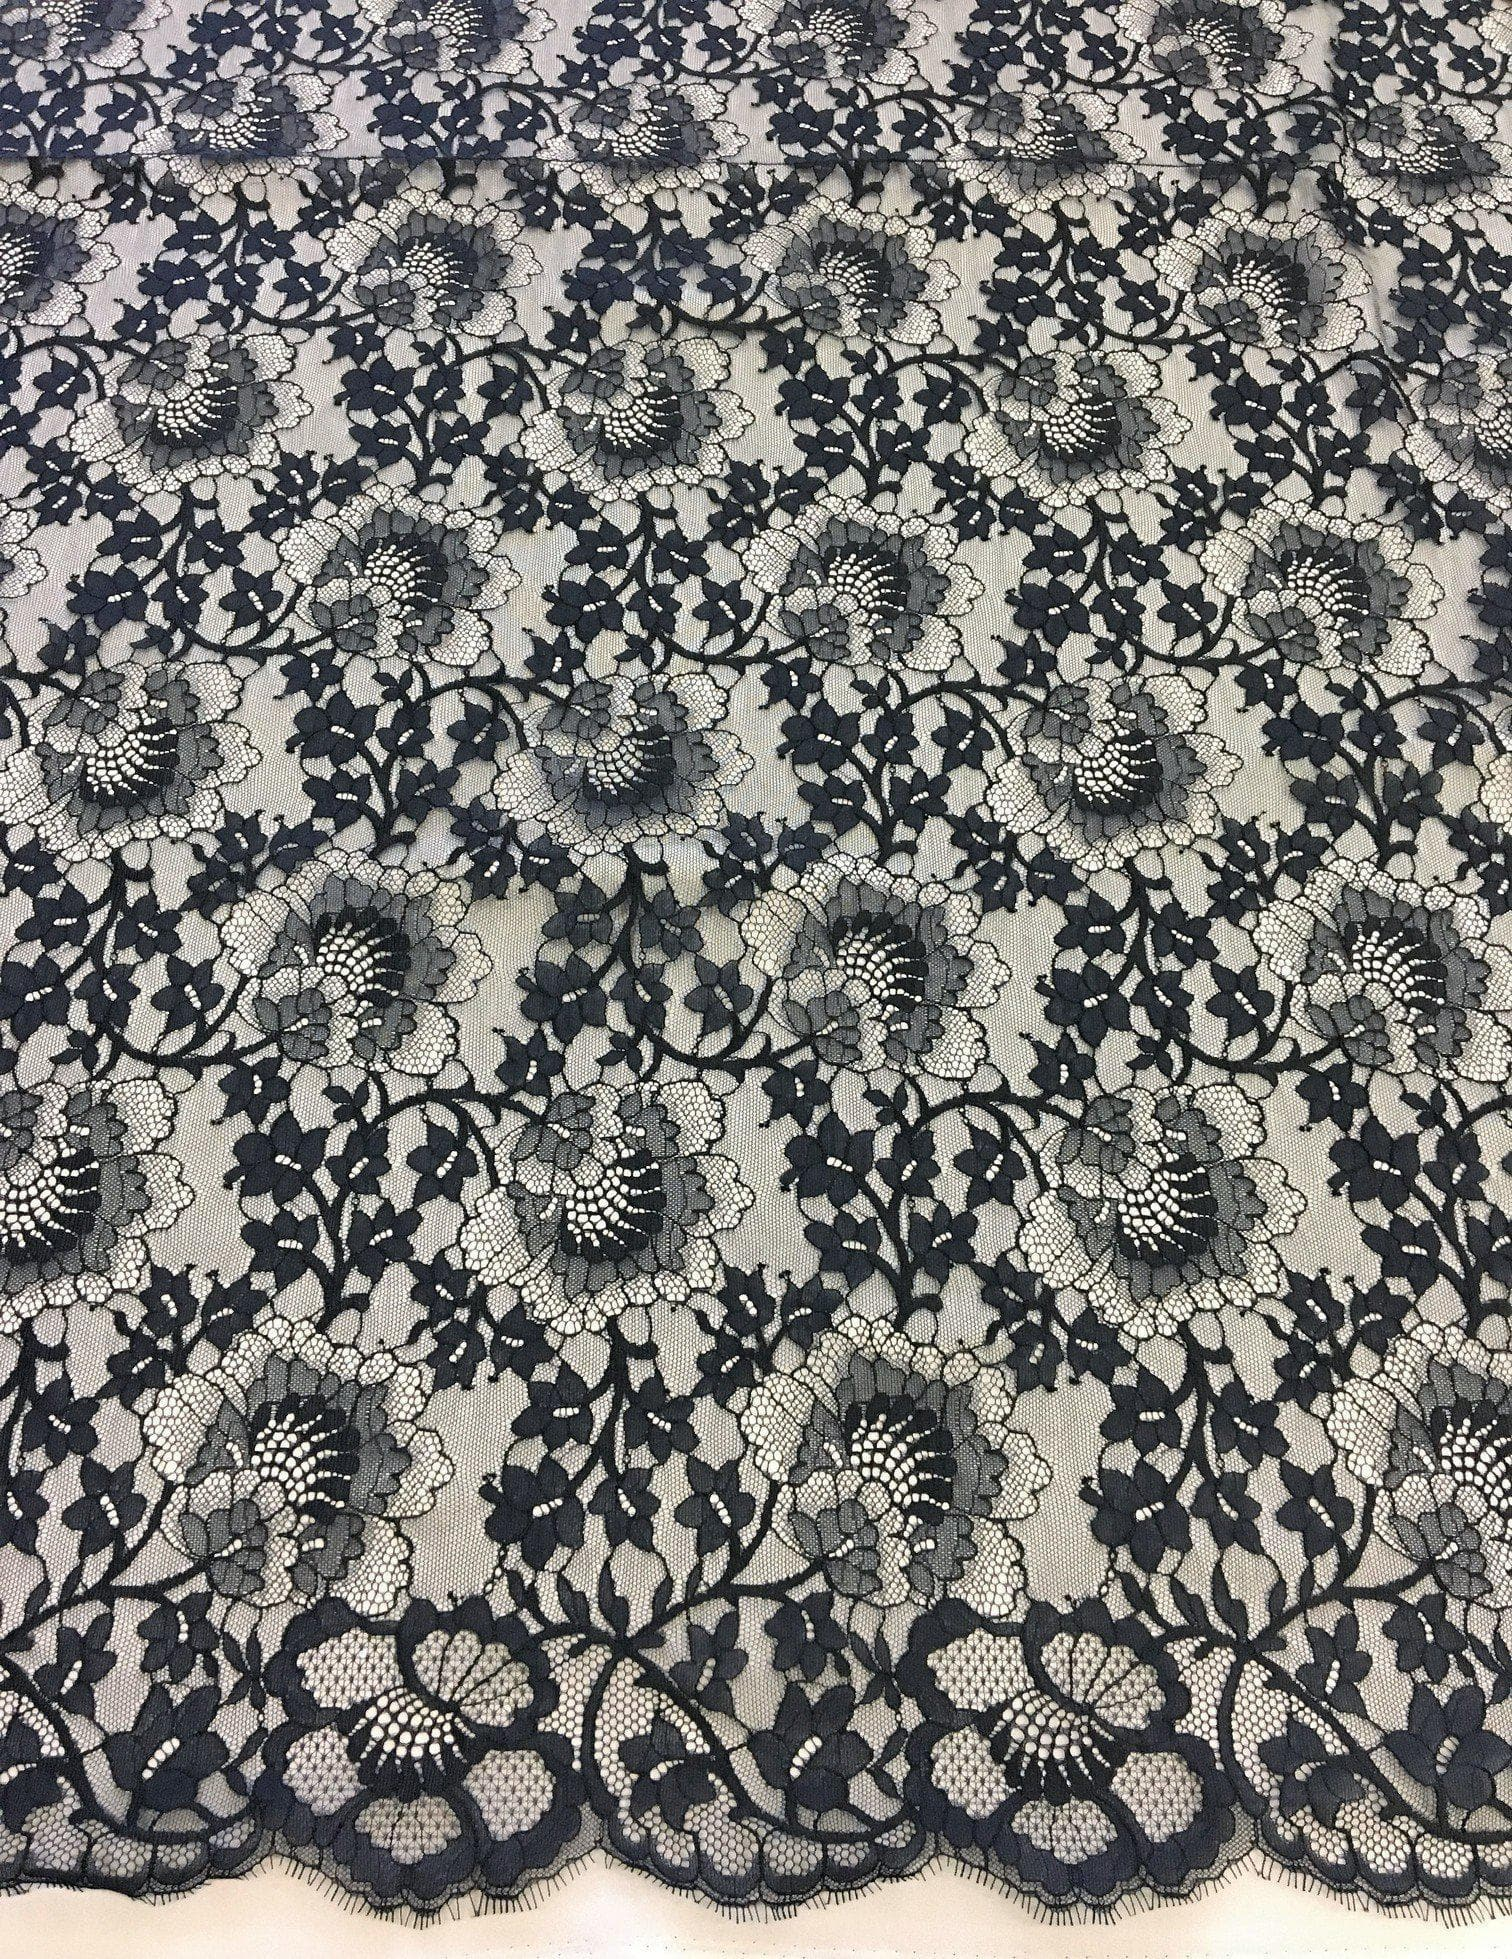 Black embroidered organza lace sold by the metre